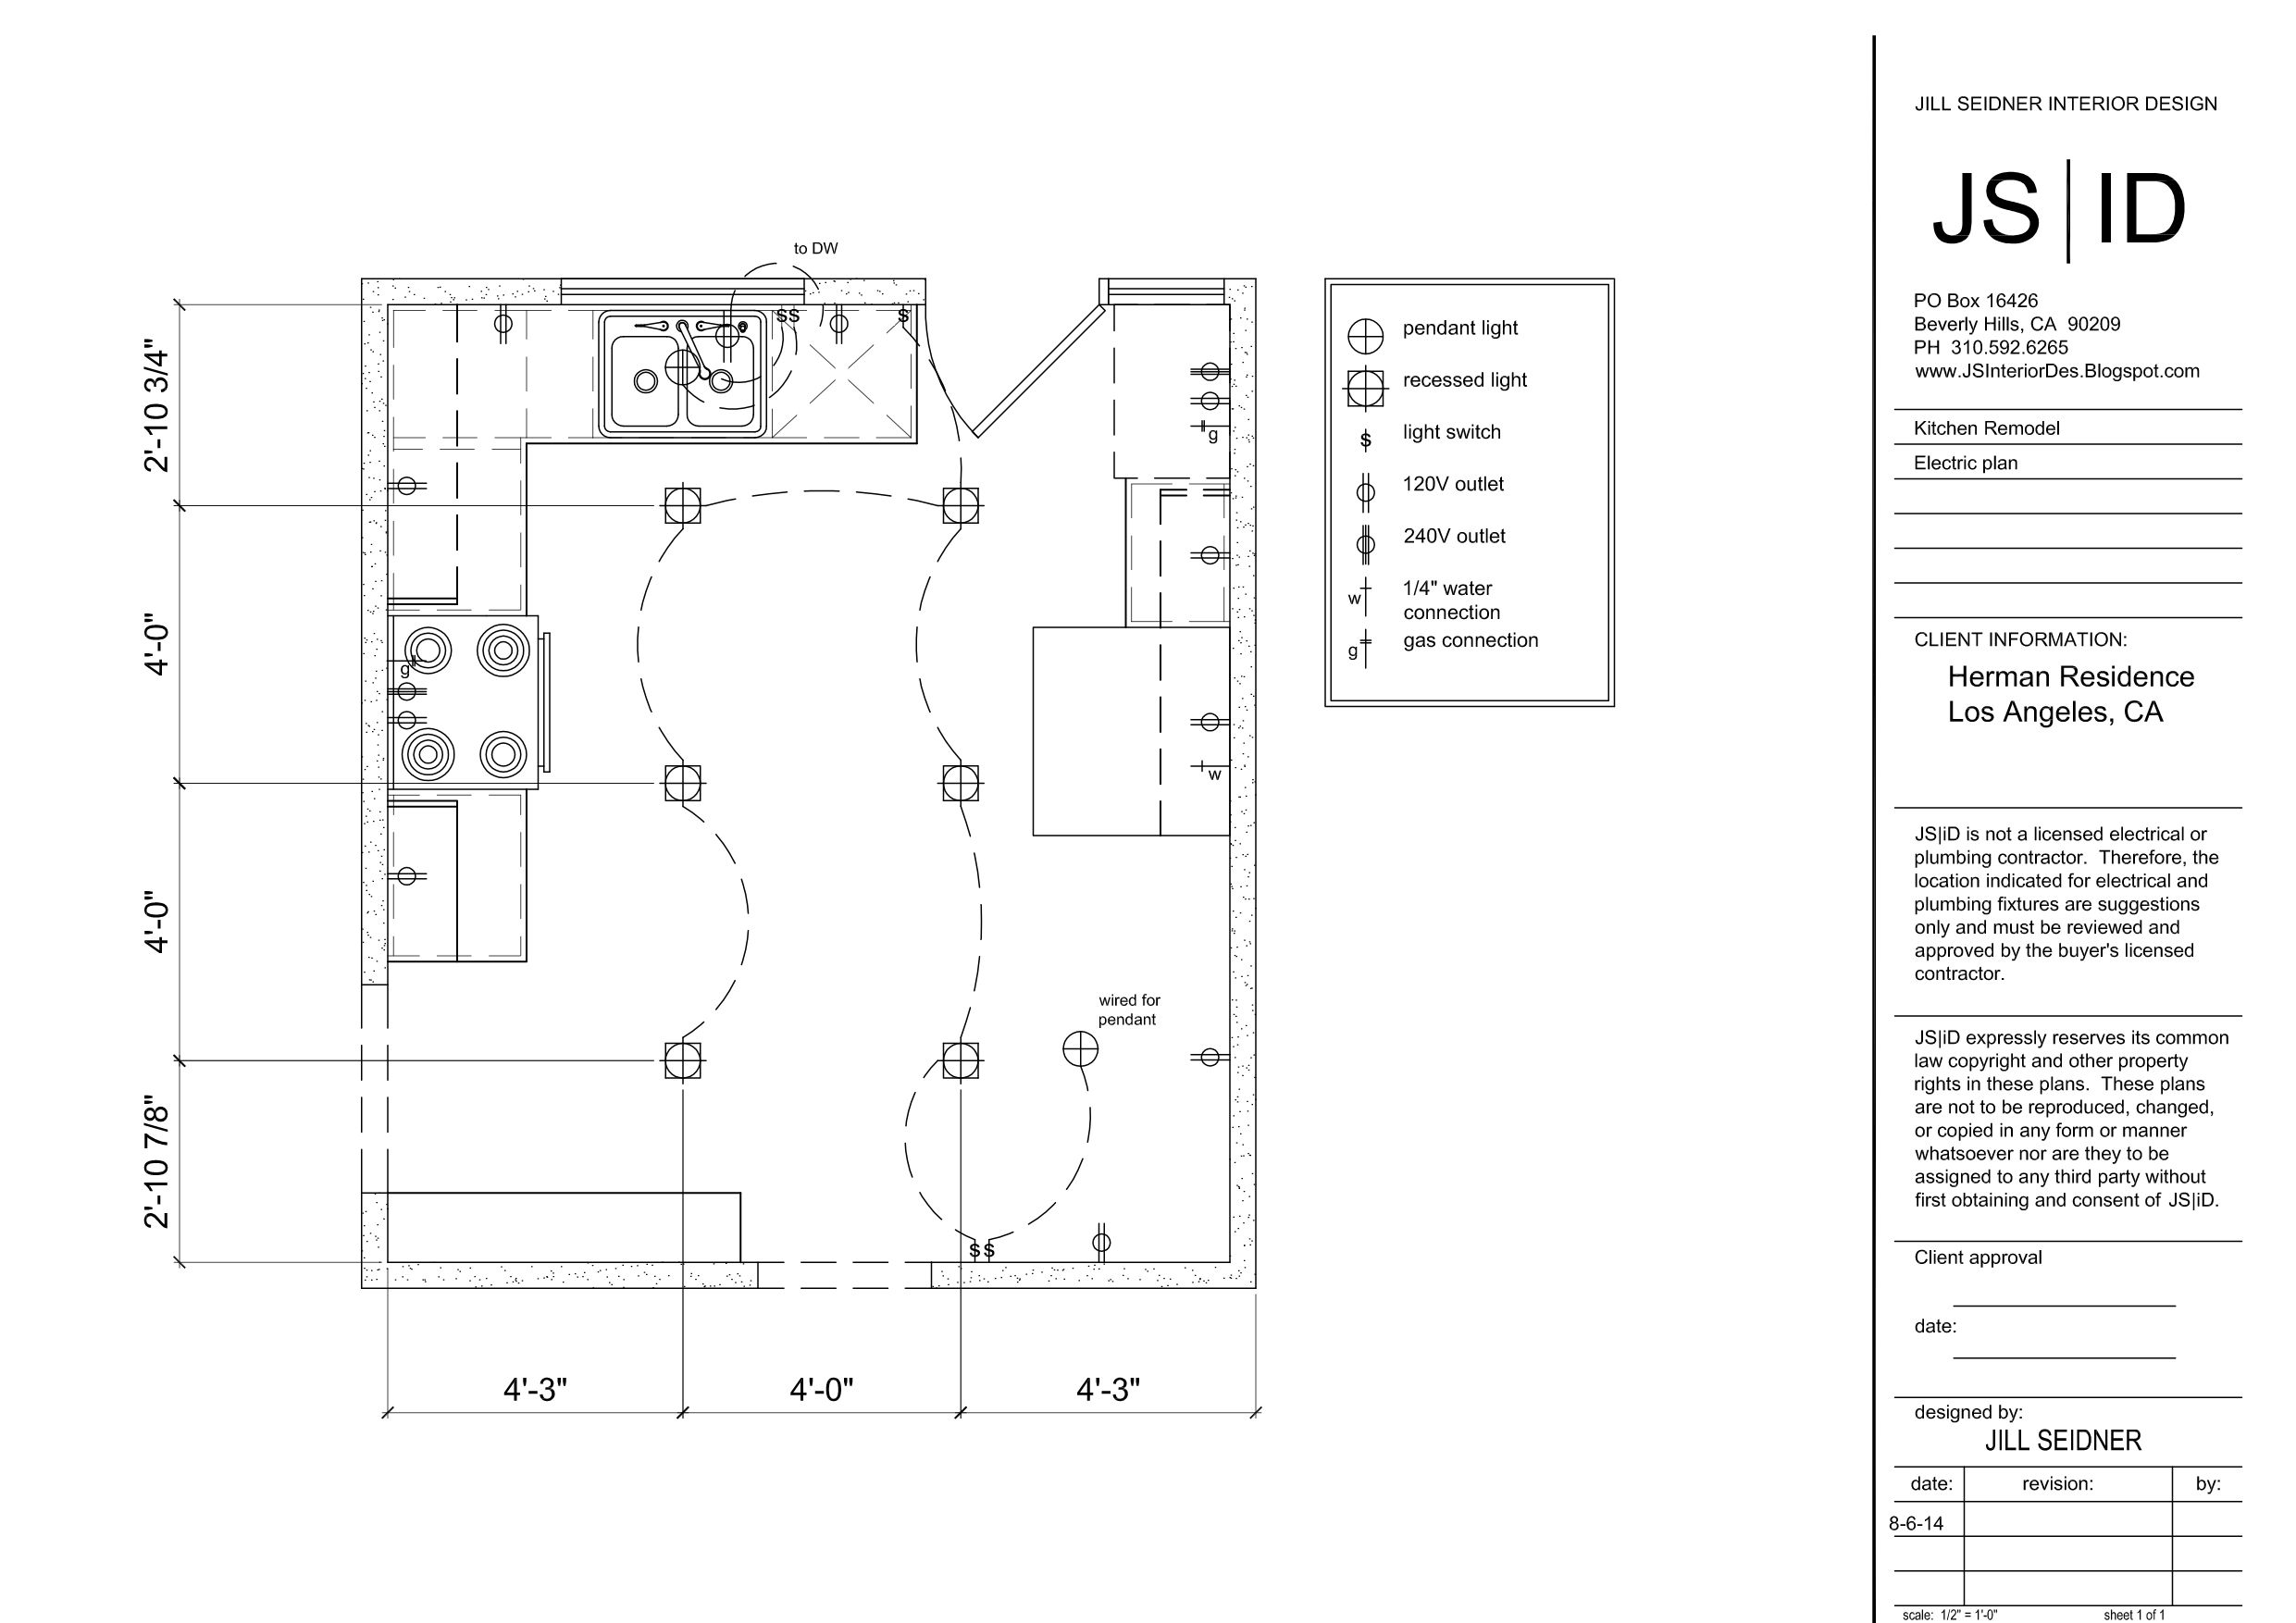 hight resolution of los angeles ca duplex kitchen remodel lighting electrical plan